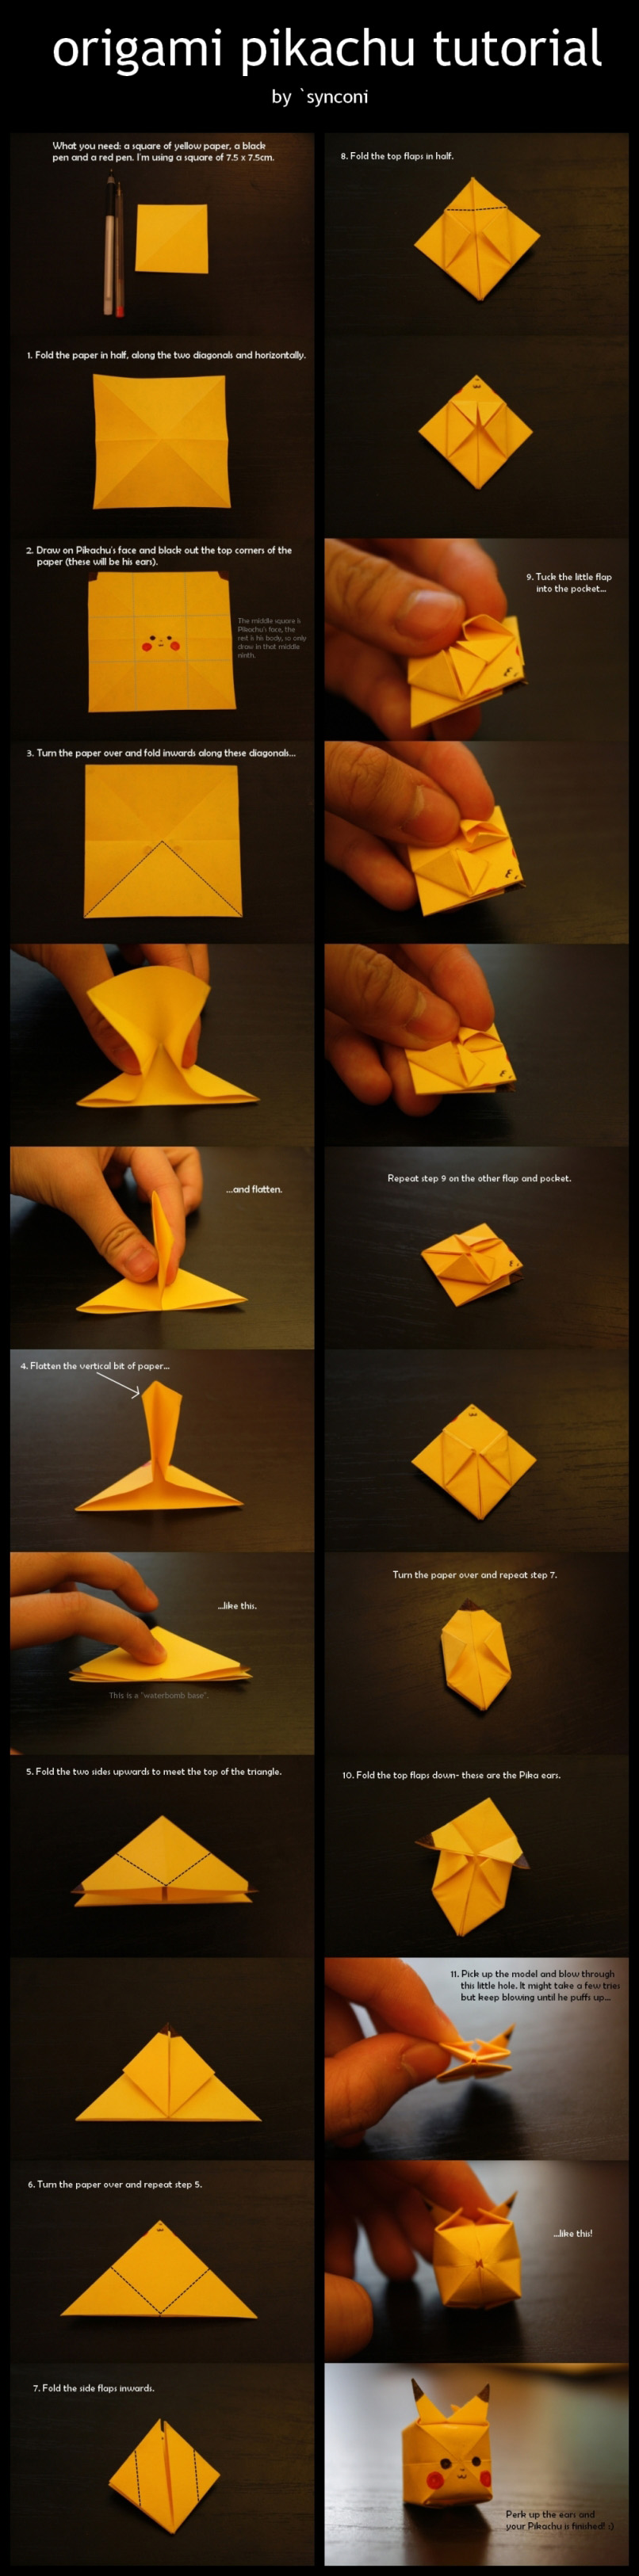 how to make your own origami pikachu designtaxicom